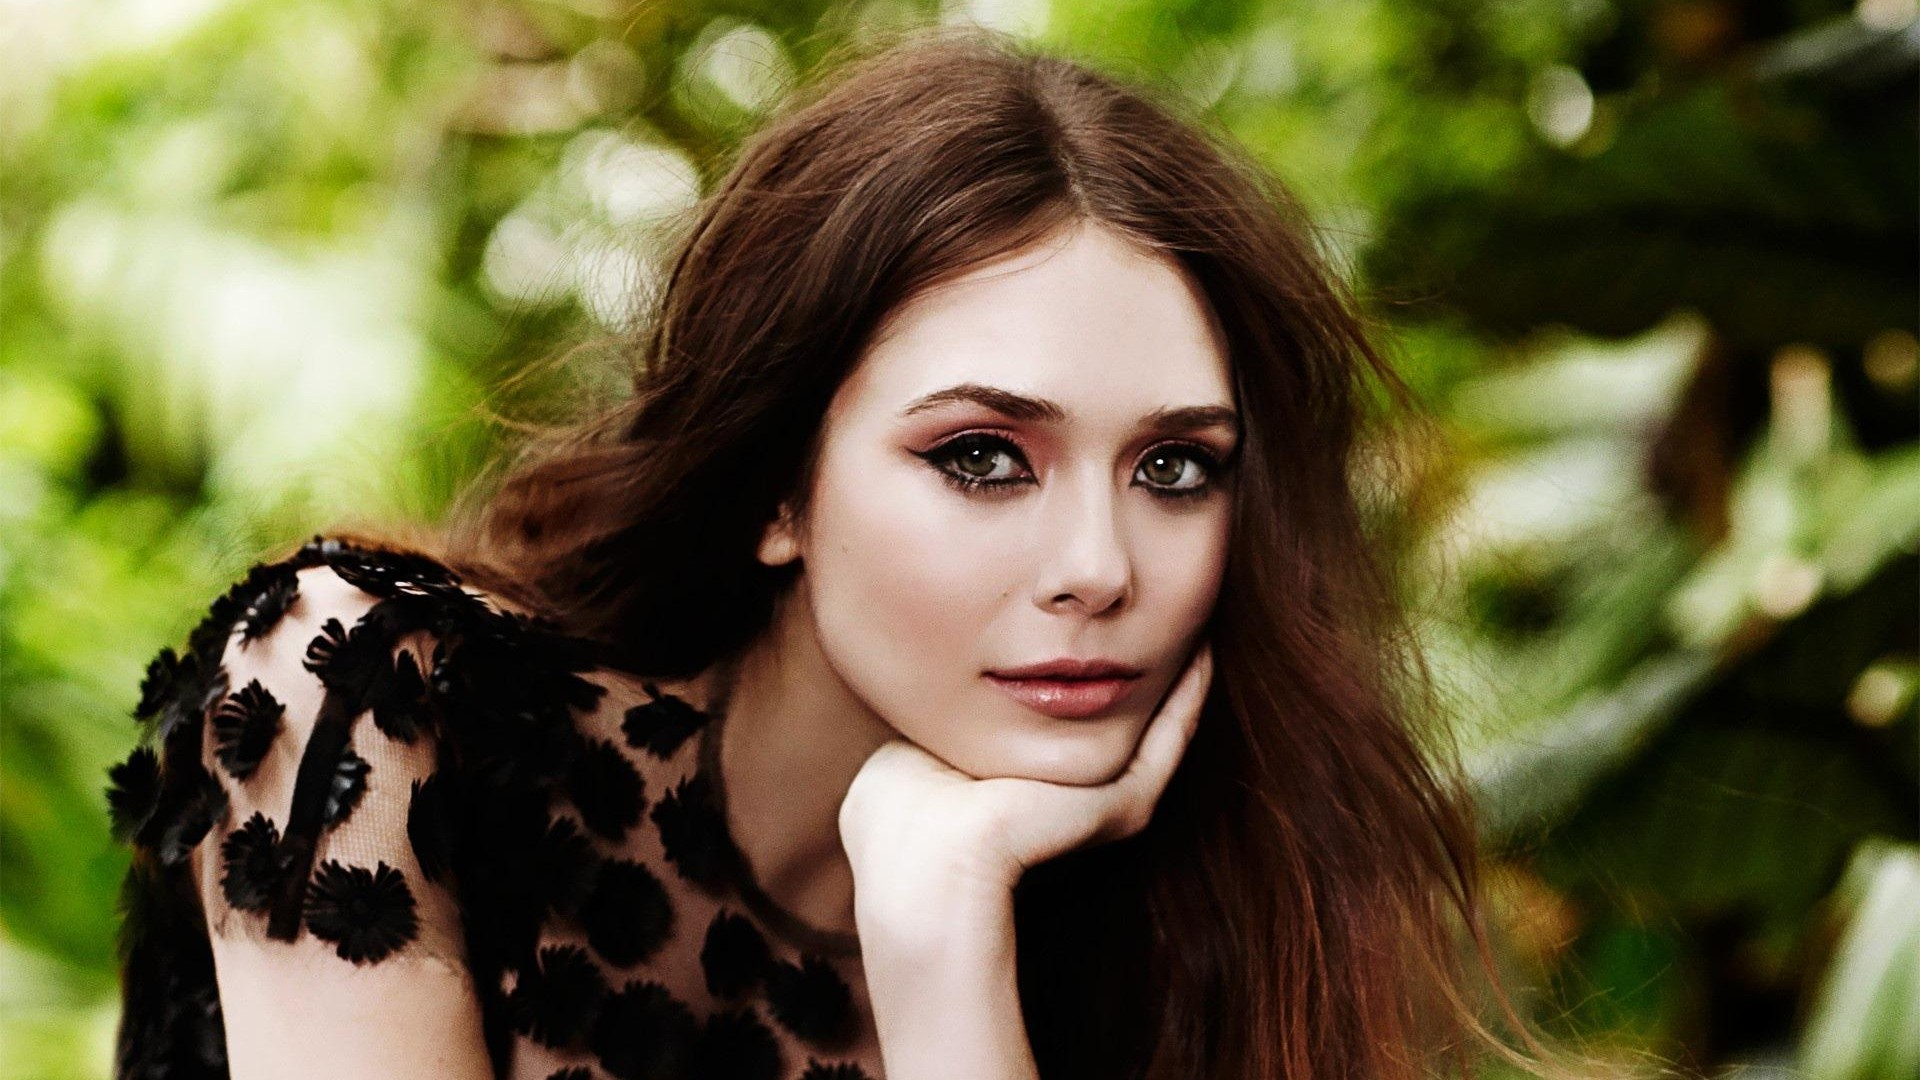 Elizabeth Olsen Cute HD desktop wallpaper Widescreen 1920x1080